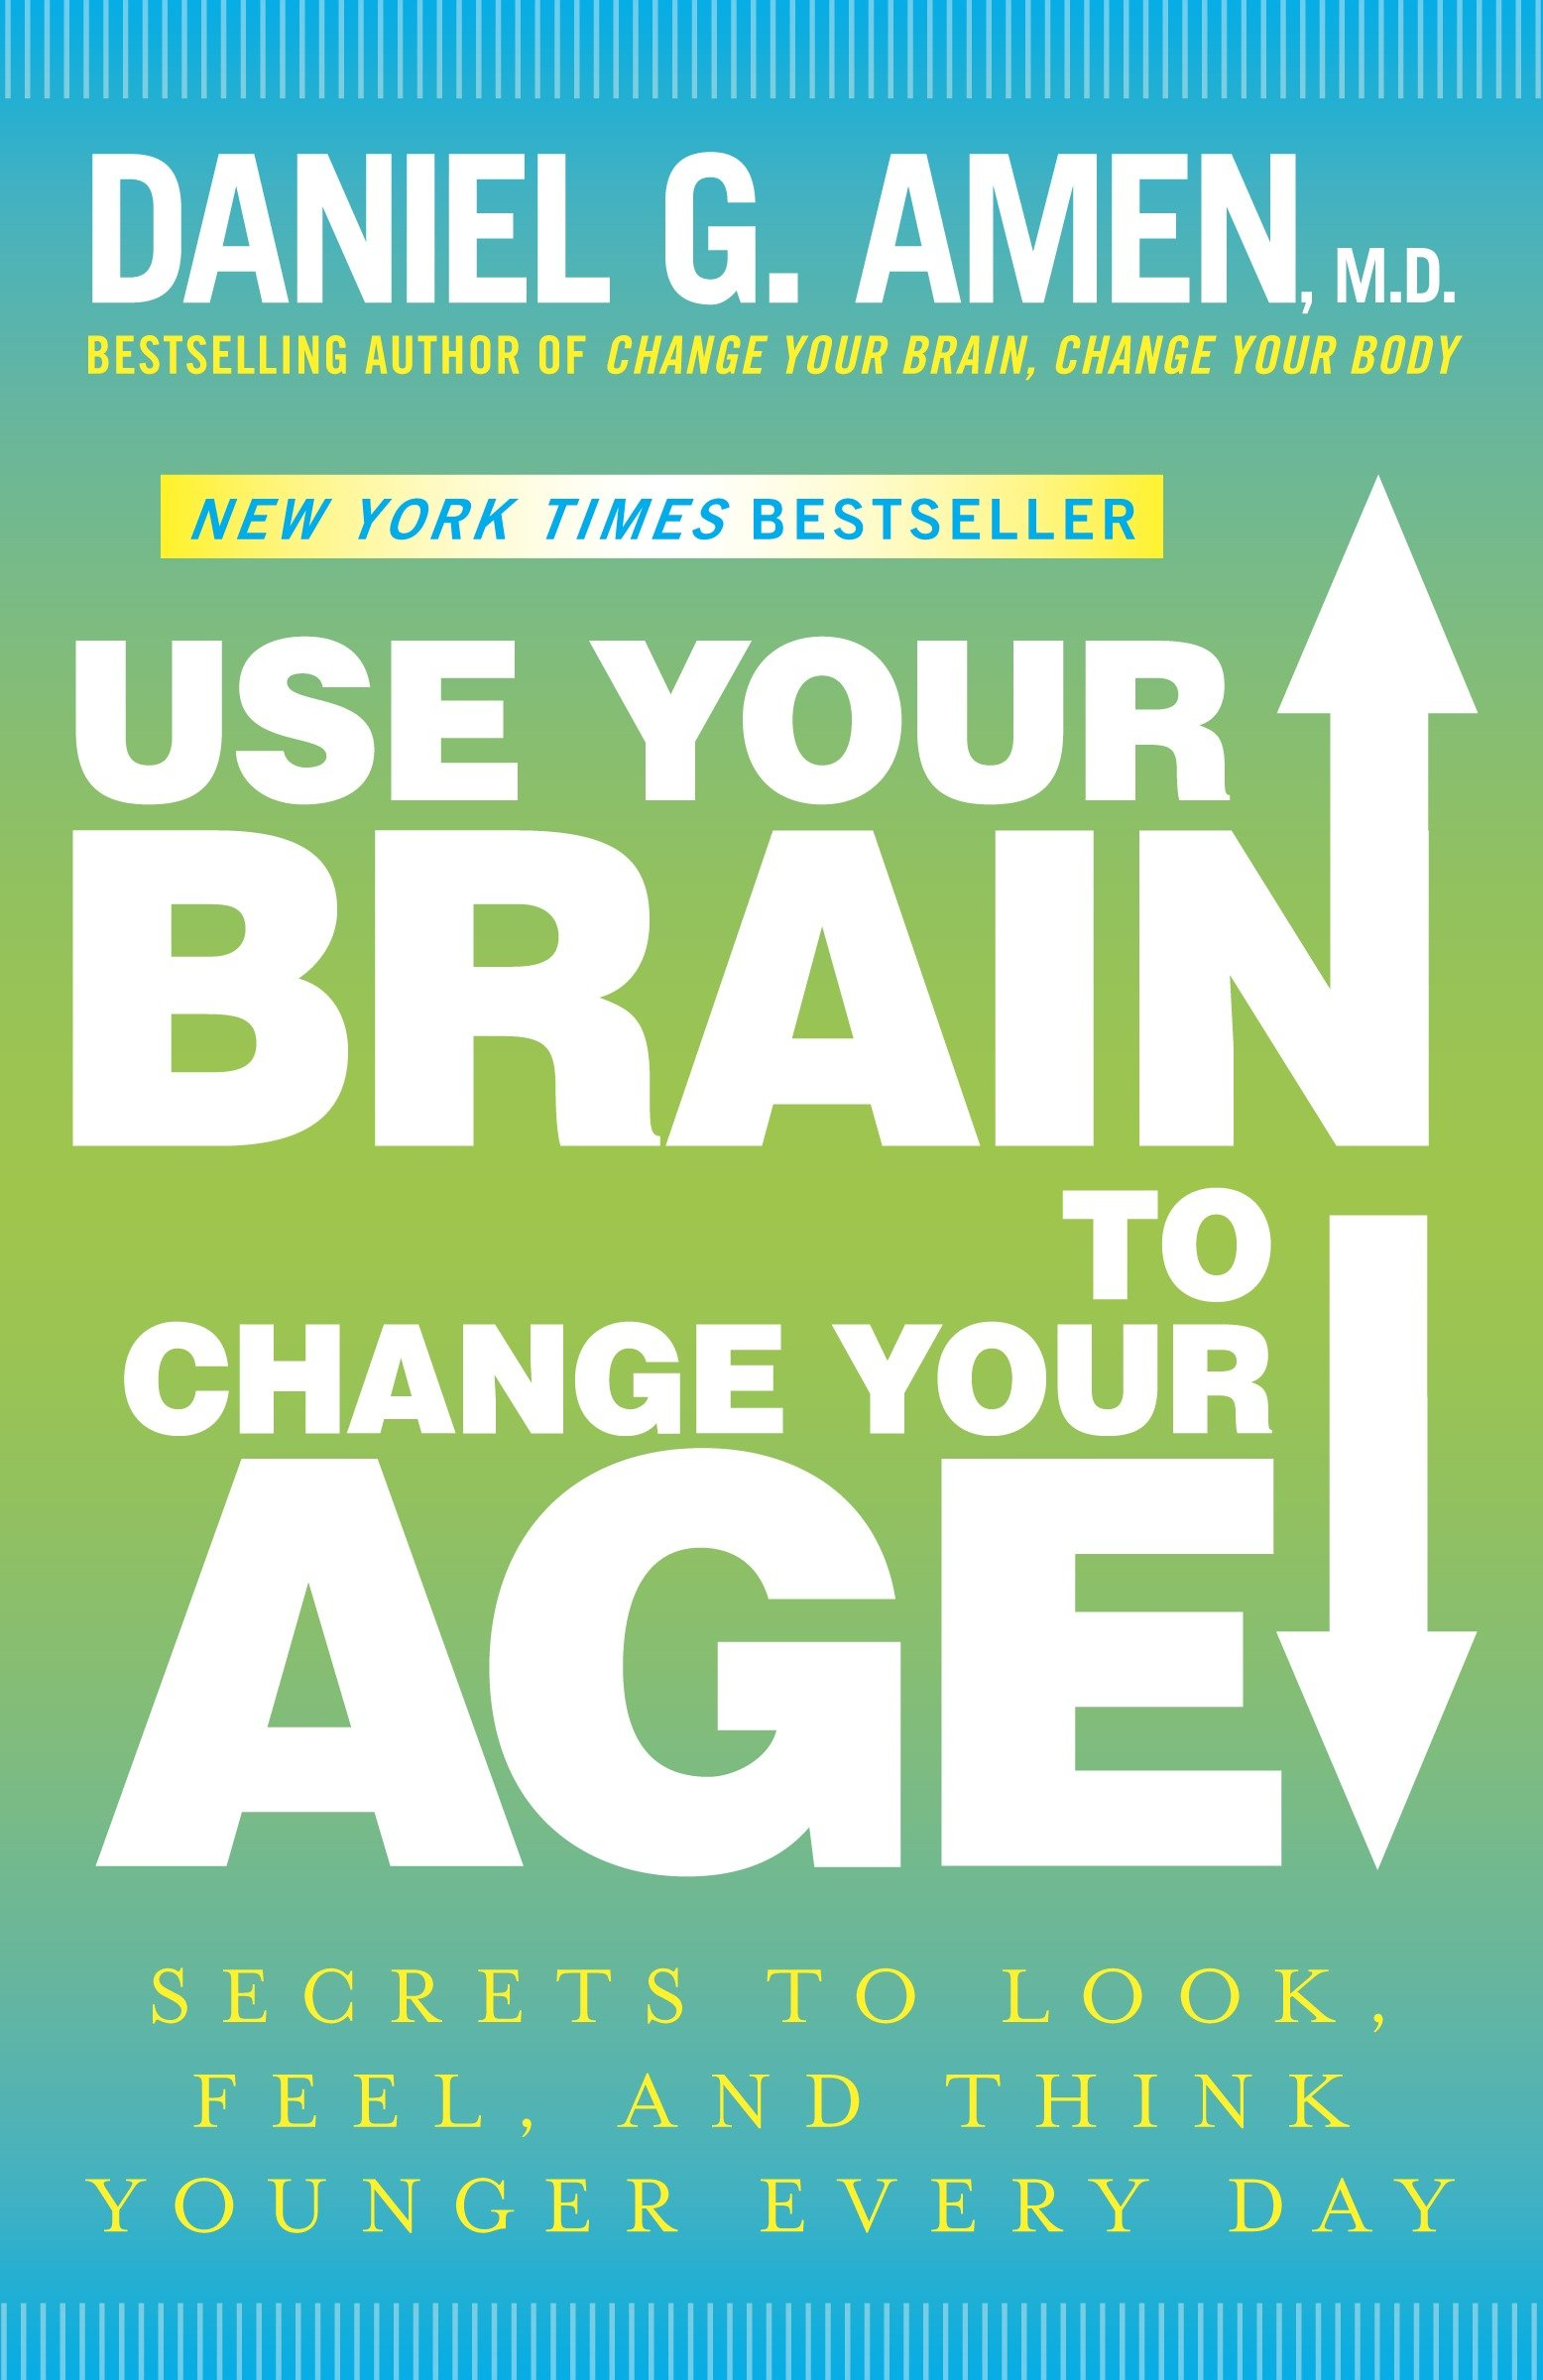 Use your brain to change your age secrets to look, feel, and think younger every day cover image